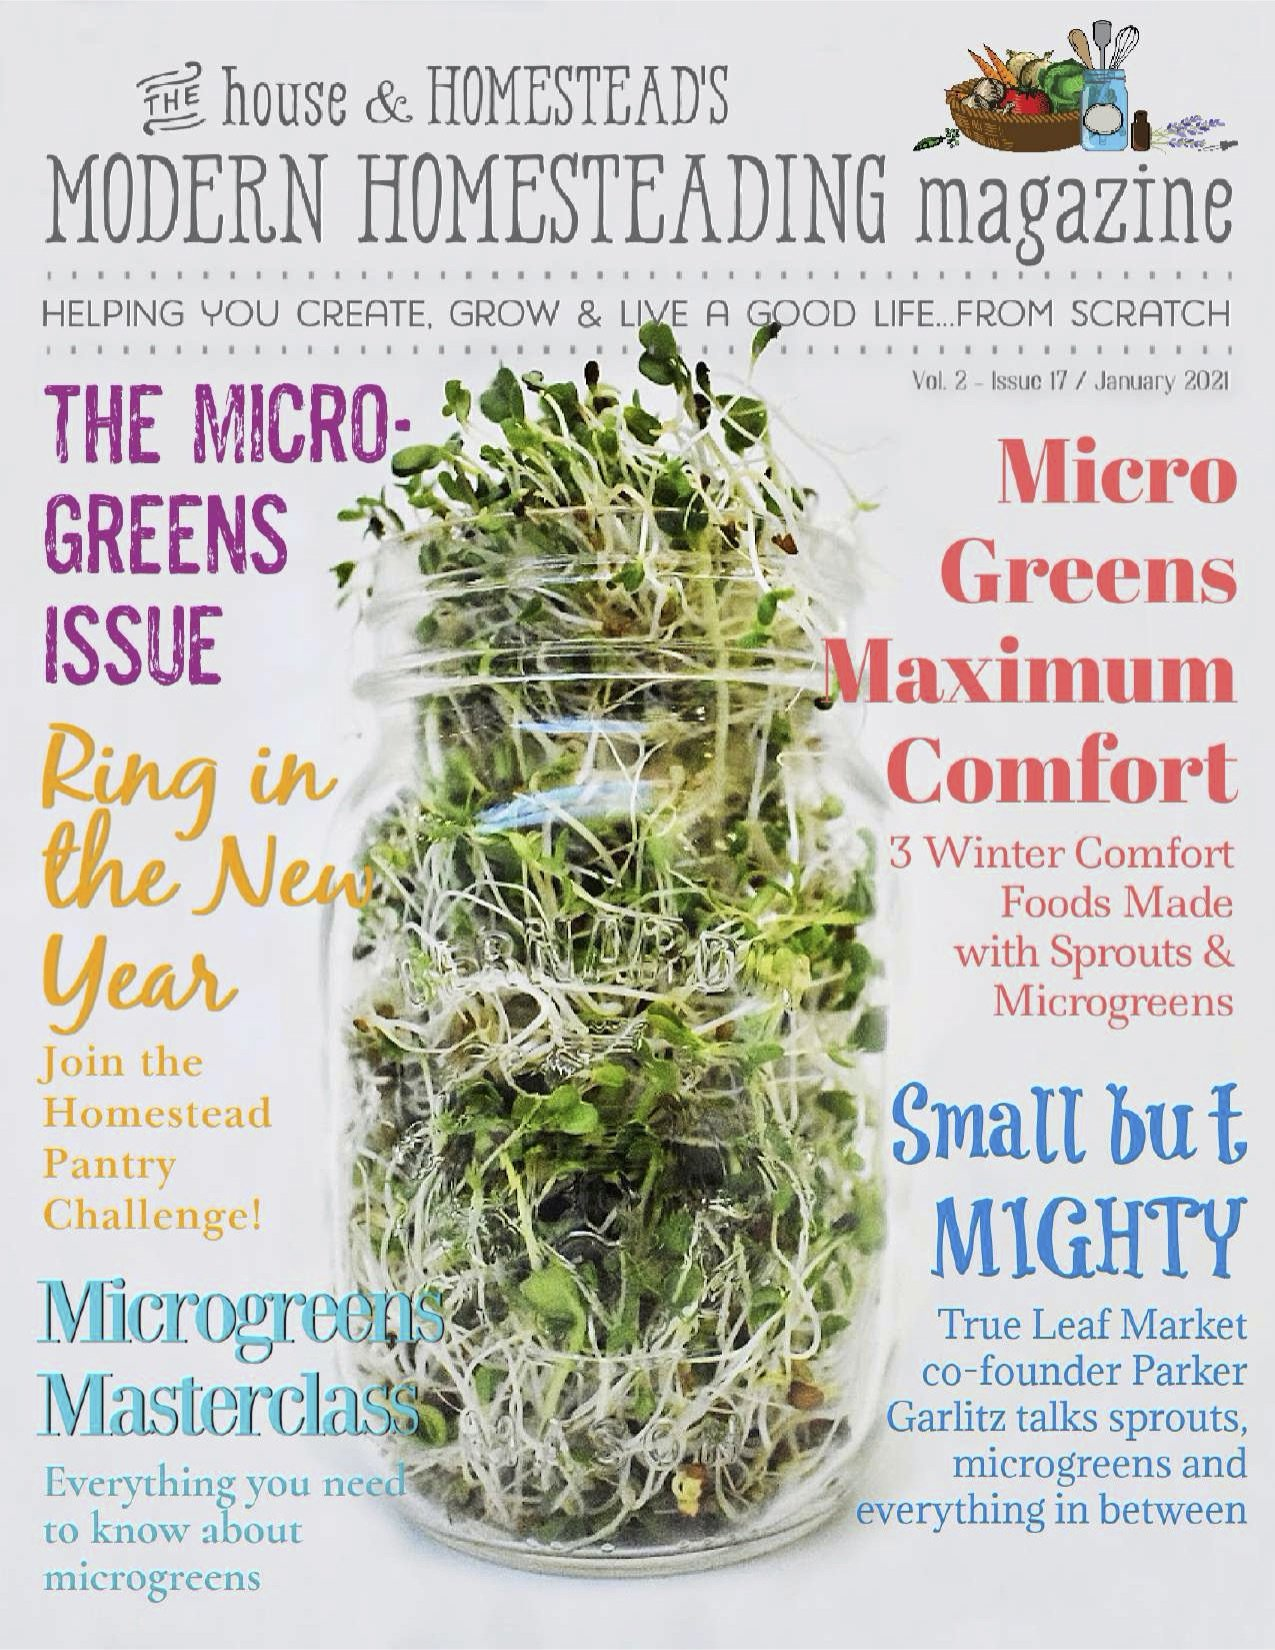 Modern Homesteading Magazine | The Microgreens Issue | January 2021